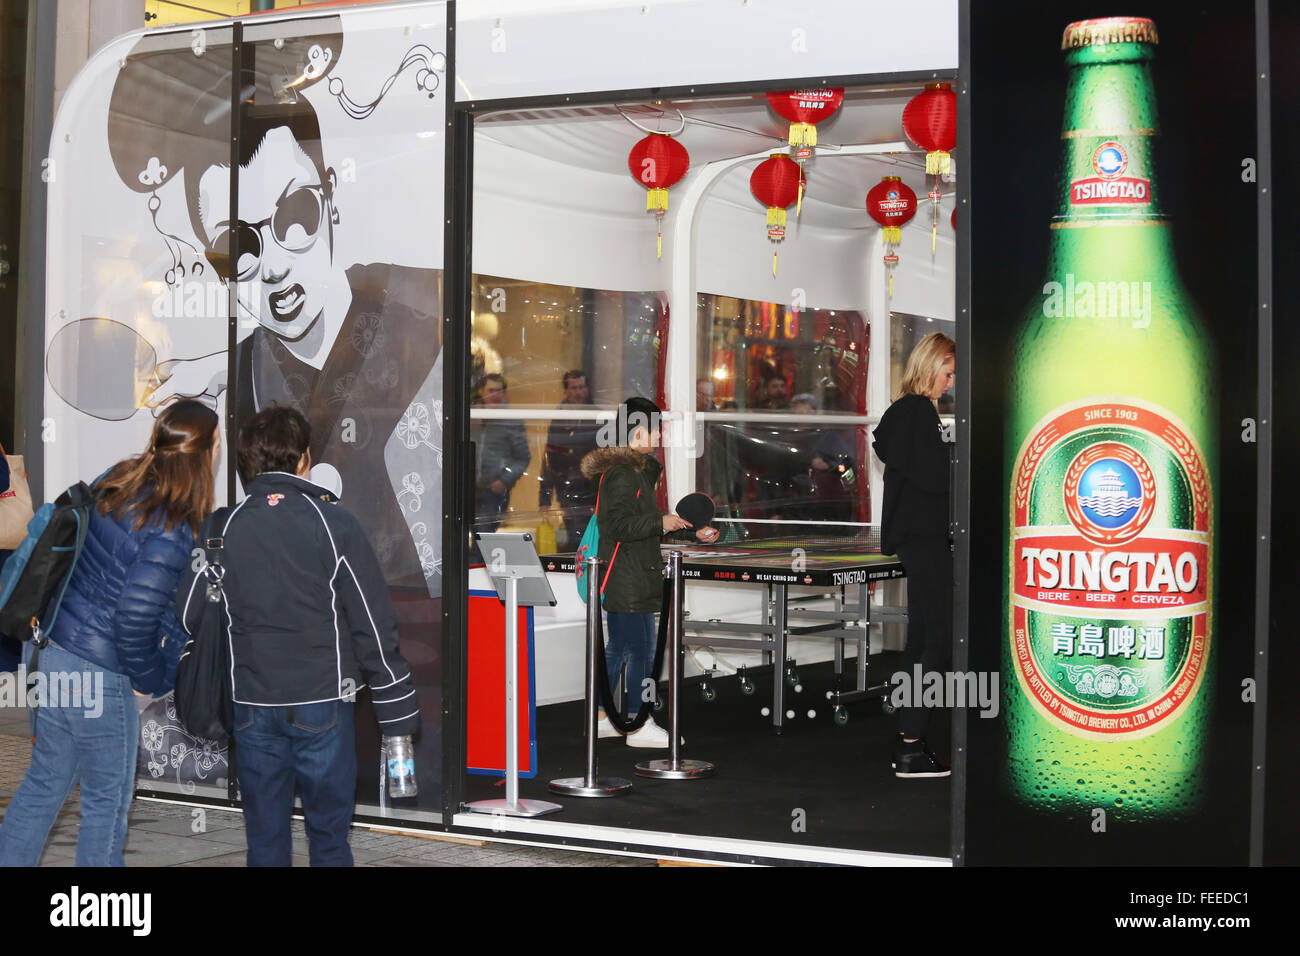 Manchester, UK. 5th February, 2016. Passers by looking into a ping pong bar in Manchester where table tennis is - Stock Image